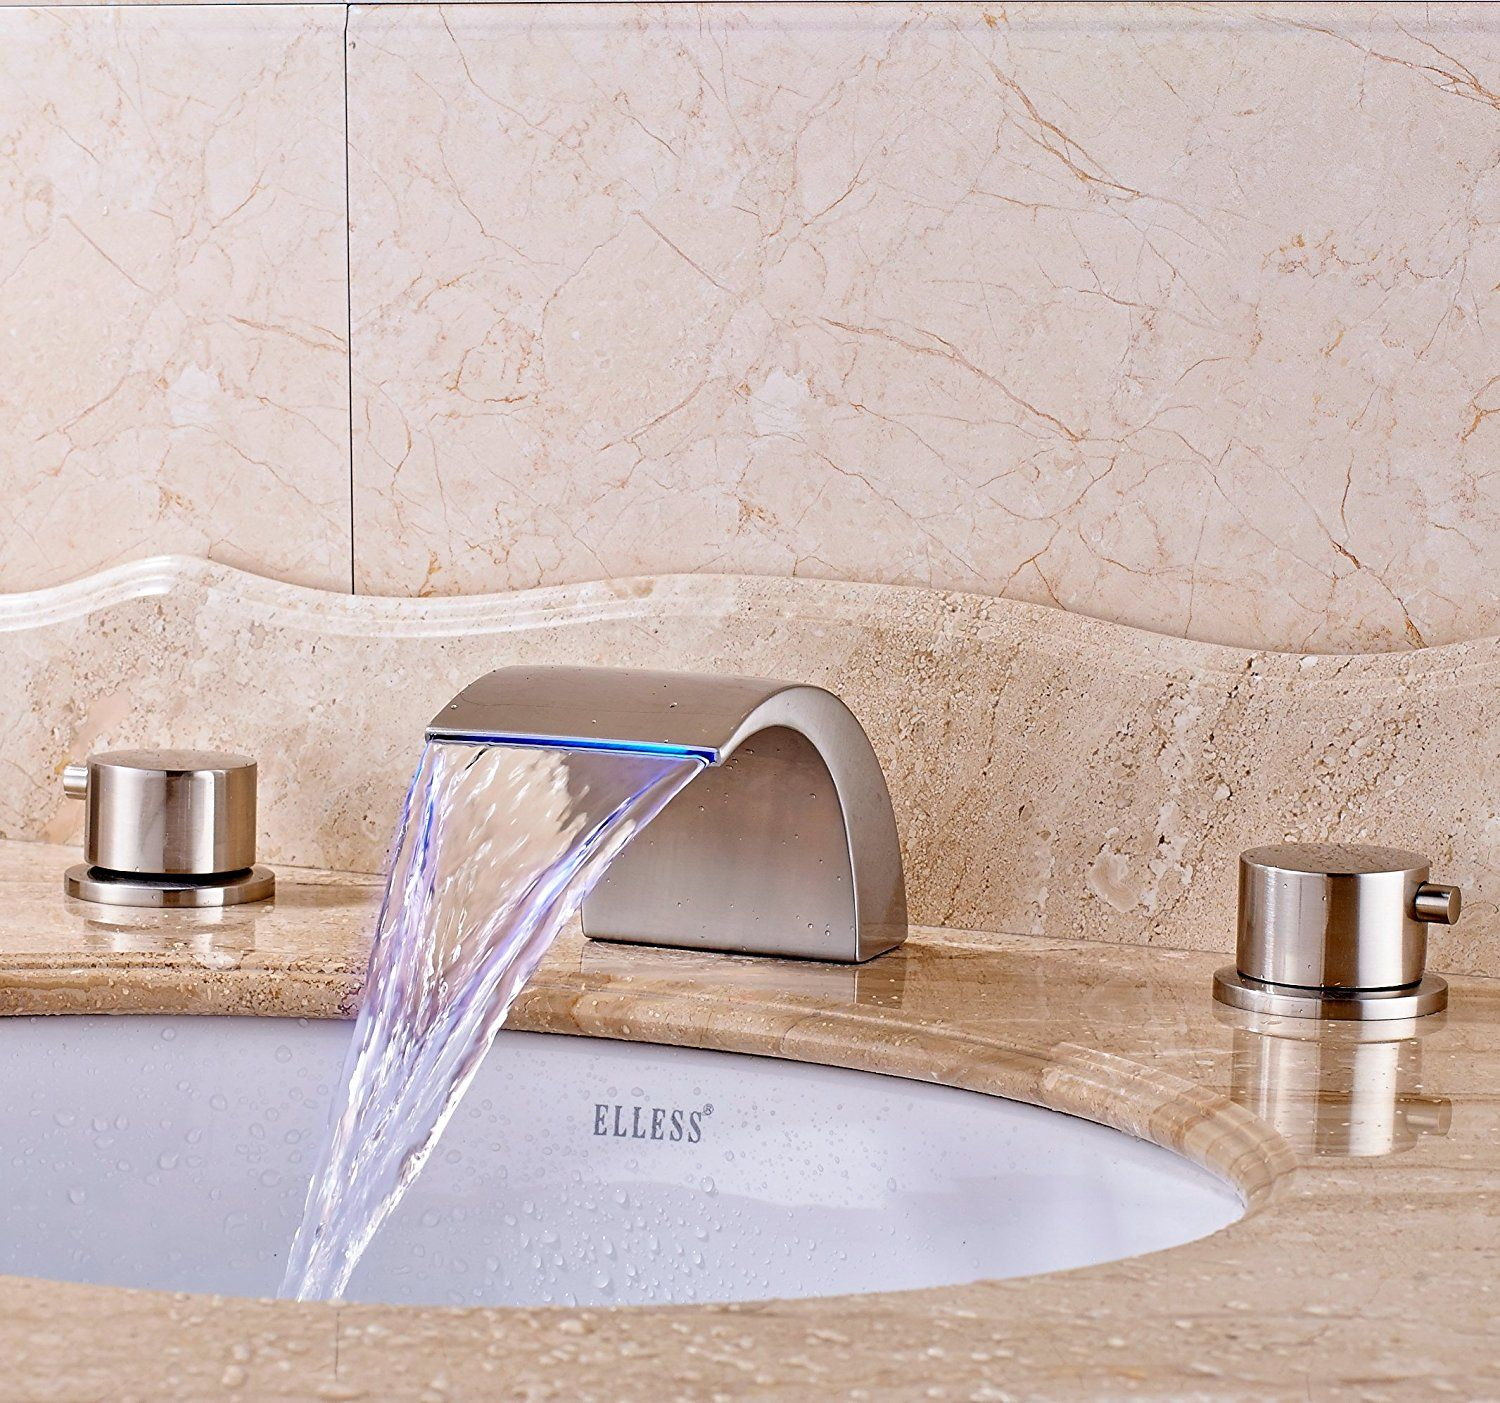 Senlesen Widespread LED Bathroom Waterfall Basin Faucet Dual Handle ...